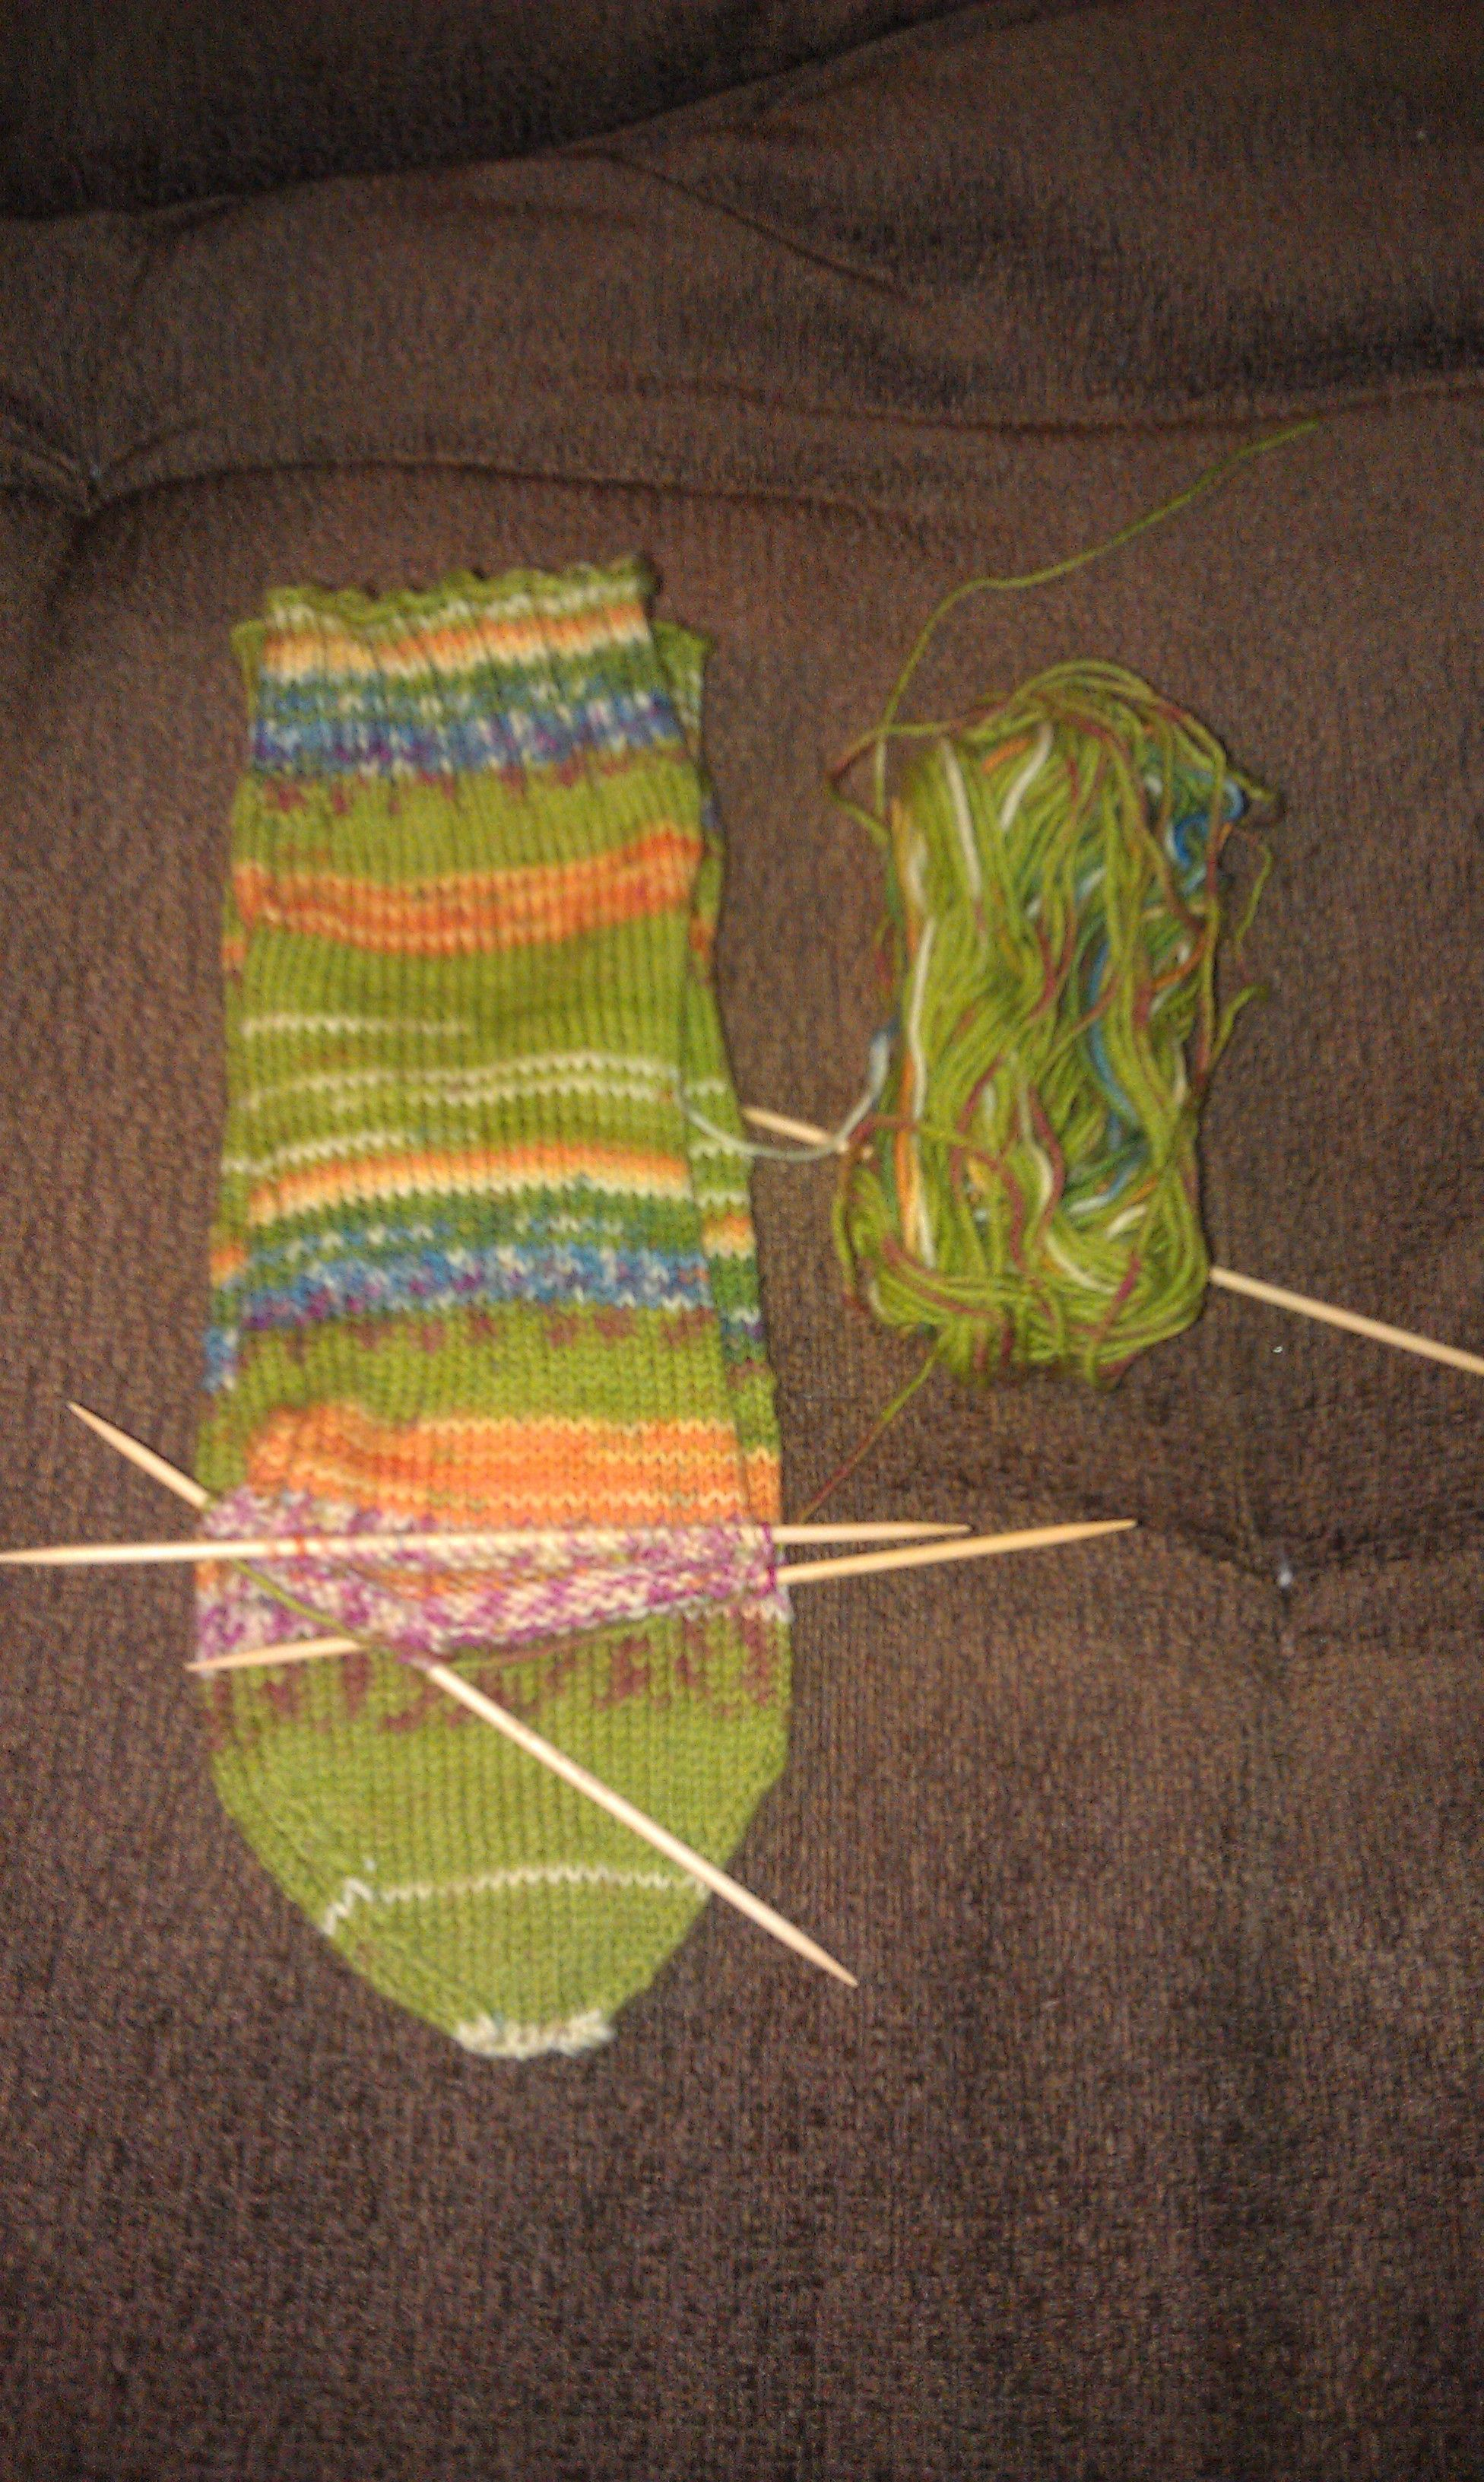 Yankee Knitter Socks for the family pattern, Red Heart Heart and Sole yarn. Some size disparity on the second sock - my gauge is off. Too late, going to finish it anyway.